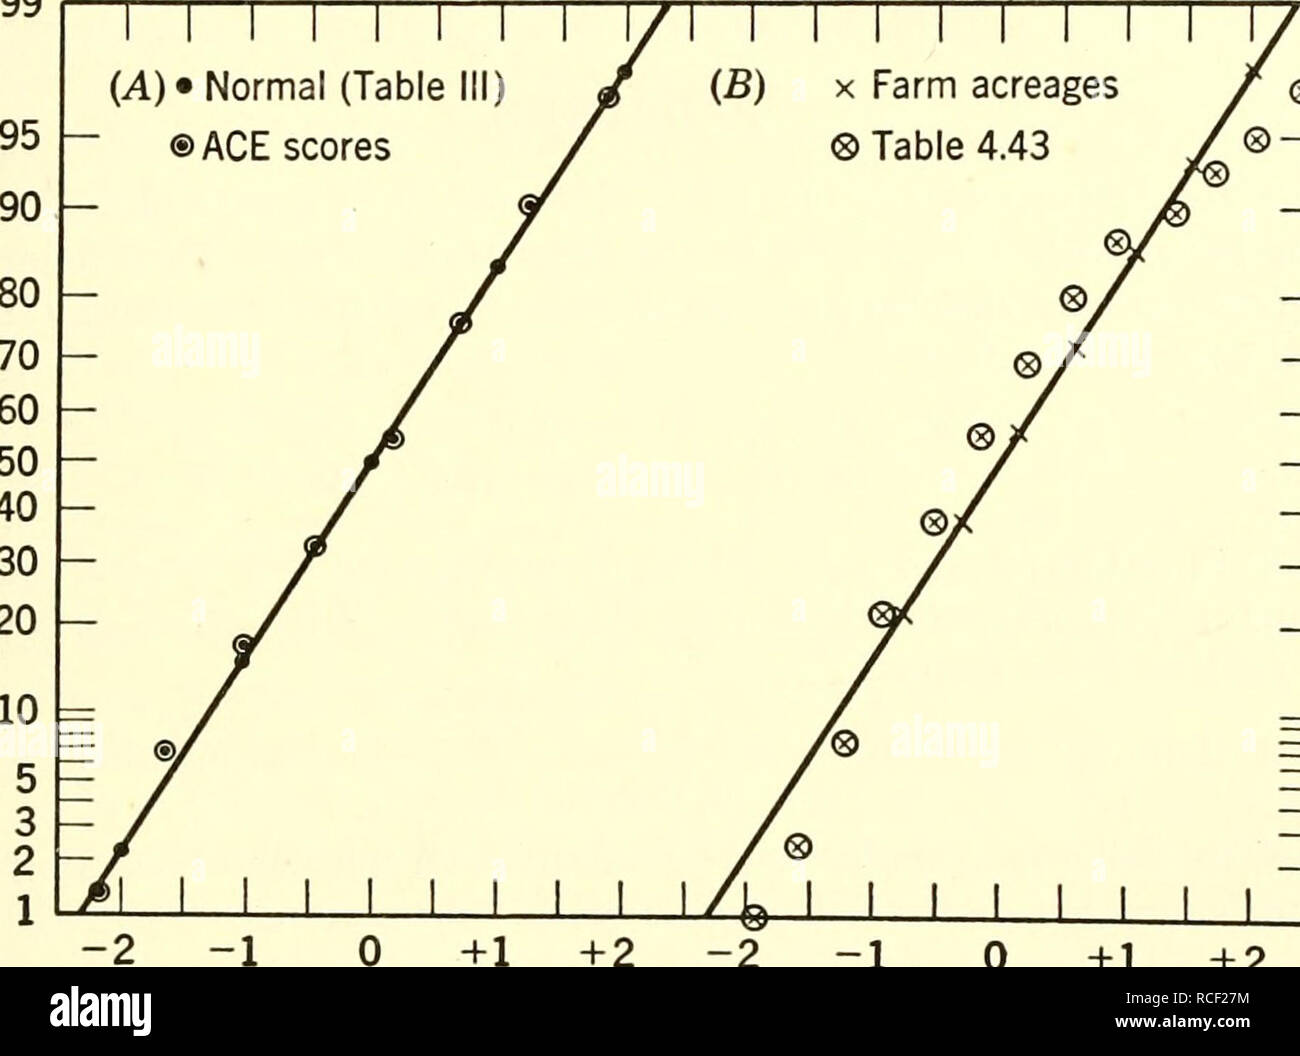 . Elements of statistics. Statistics. Sec. 4.5 RECTIFICATION OF THE NORMAL CURVE 107 TABLE 4.53 A Fictitious Non-normal Frequency Distribution Class Interval / r.c.J. X Class Interval / r.c.j. 55-59.9.. 1 100.0 3.9 10-14.9. 60 80.1 0.61 50-54.9.. 2 99.8 3.5 5- 9.9. 80 69.5 0.25 45-49.9.. 5 99.5 3.2 0- 4.9. 100 55.5 -0.11 40-44.9.. 8 98.6 2.8 - 5 to - 0.0. 90 37.9 -0.48 35-39.9.. 10 97.2 2.43 -10 to - 5.0. 80 22.0 -0.84 30-34.9.. 12 95.4 2.07 -15 to -10.0. 30 7.9 -1.21 25-29.9.. 15 93.3 1.70 -20 to -15.0. 10 2.6 -1.57 20-24.9.. 20 90.7 1.34 -25 to -20.0. 5 0.9 -1.94 15-19.9.. 40 87.1 0.98 568 j Stock Photo